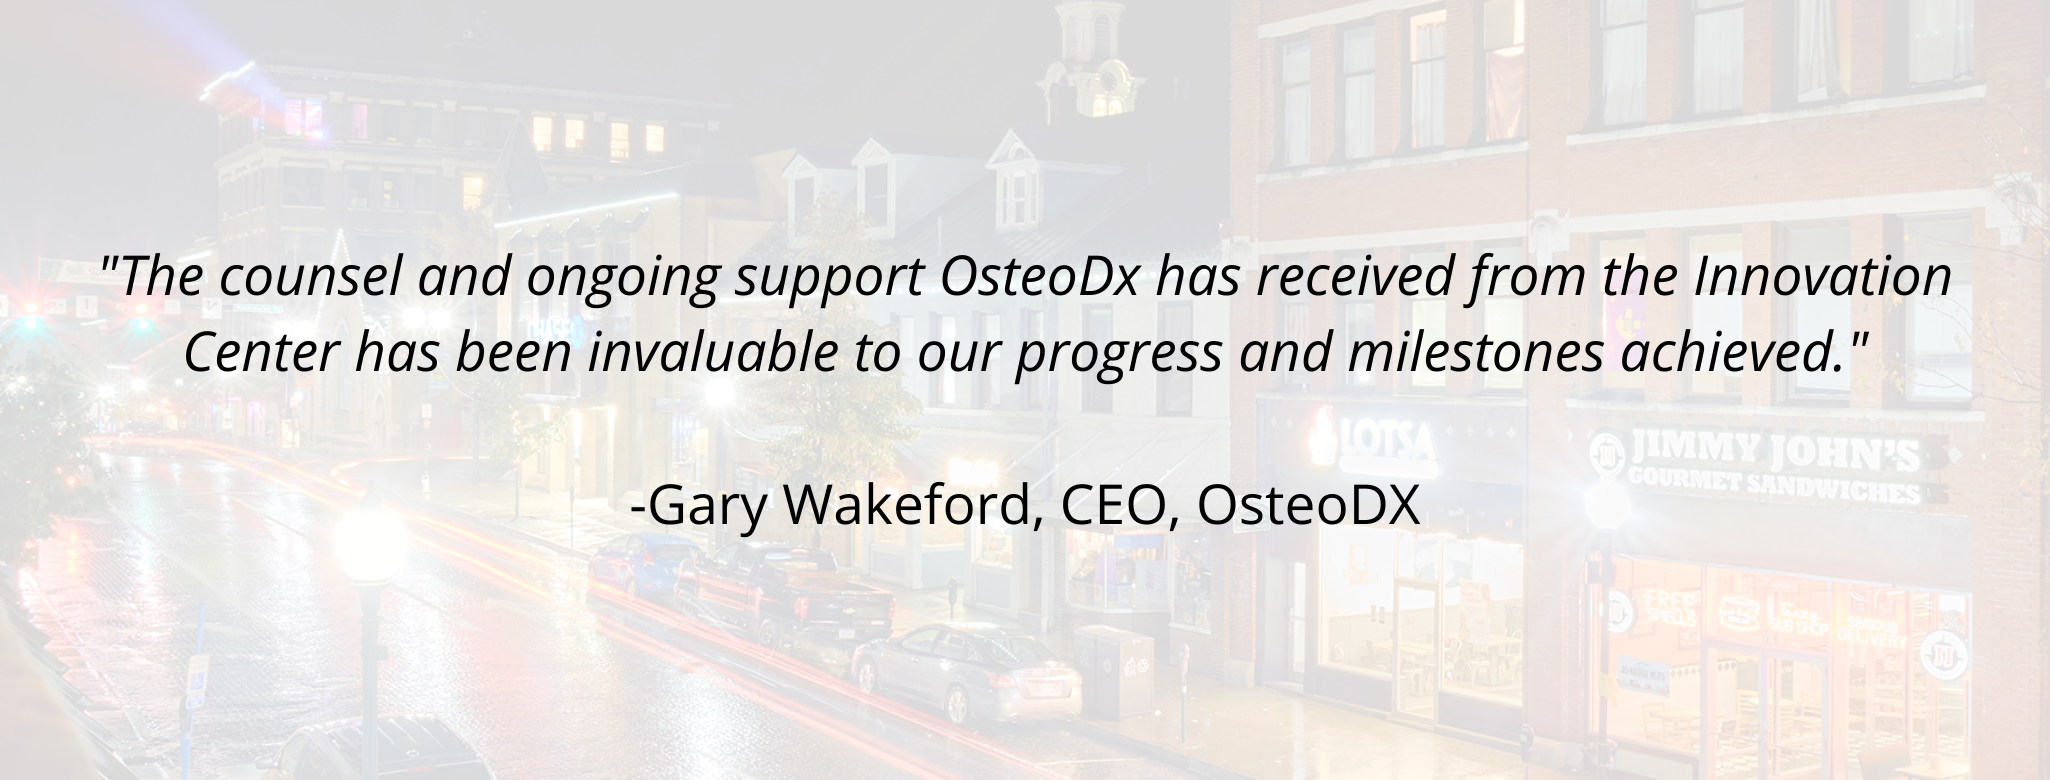 """""""The counsel and ongoing support OsteoDx has received from the Innovation Center has been invaluable to our progress and milestones achieved."""" - Gary Wakeford, CEO, OsteoDX"""